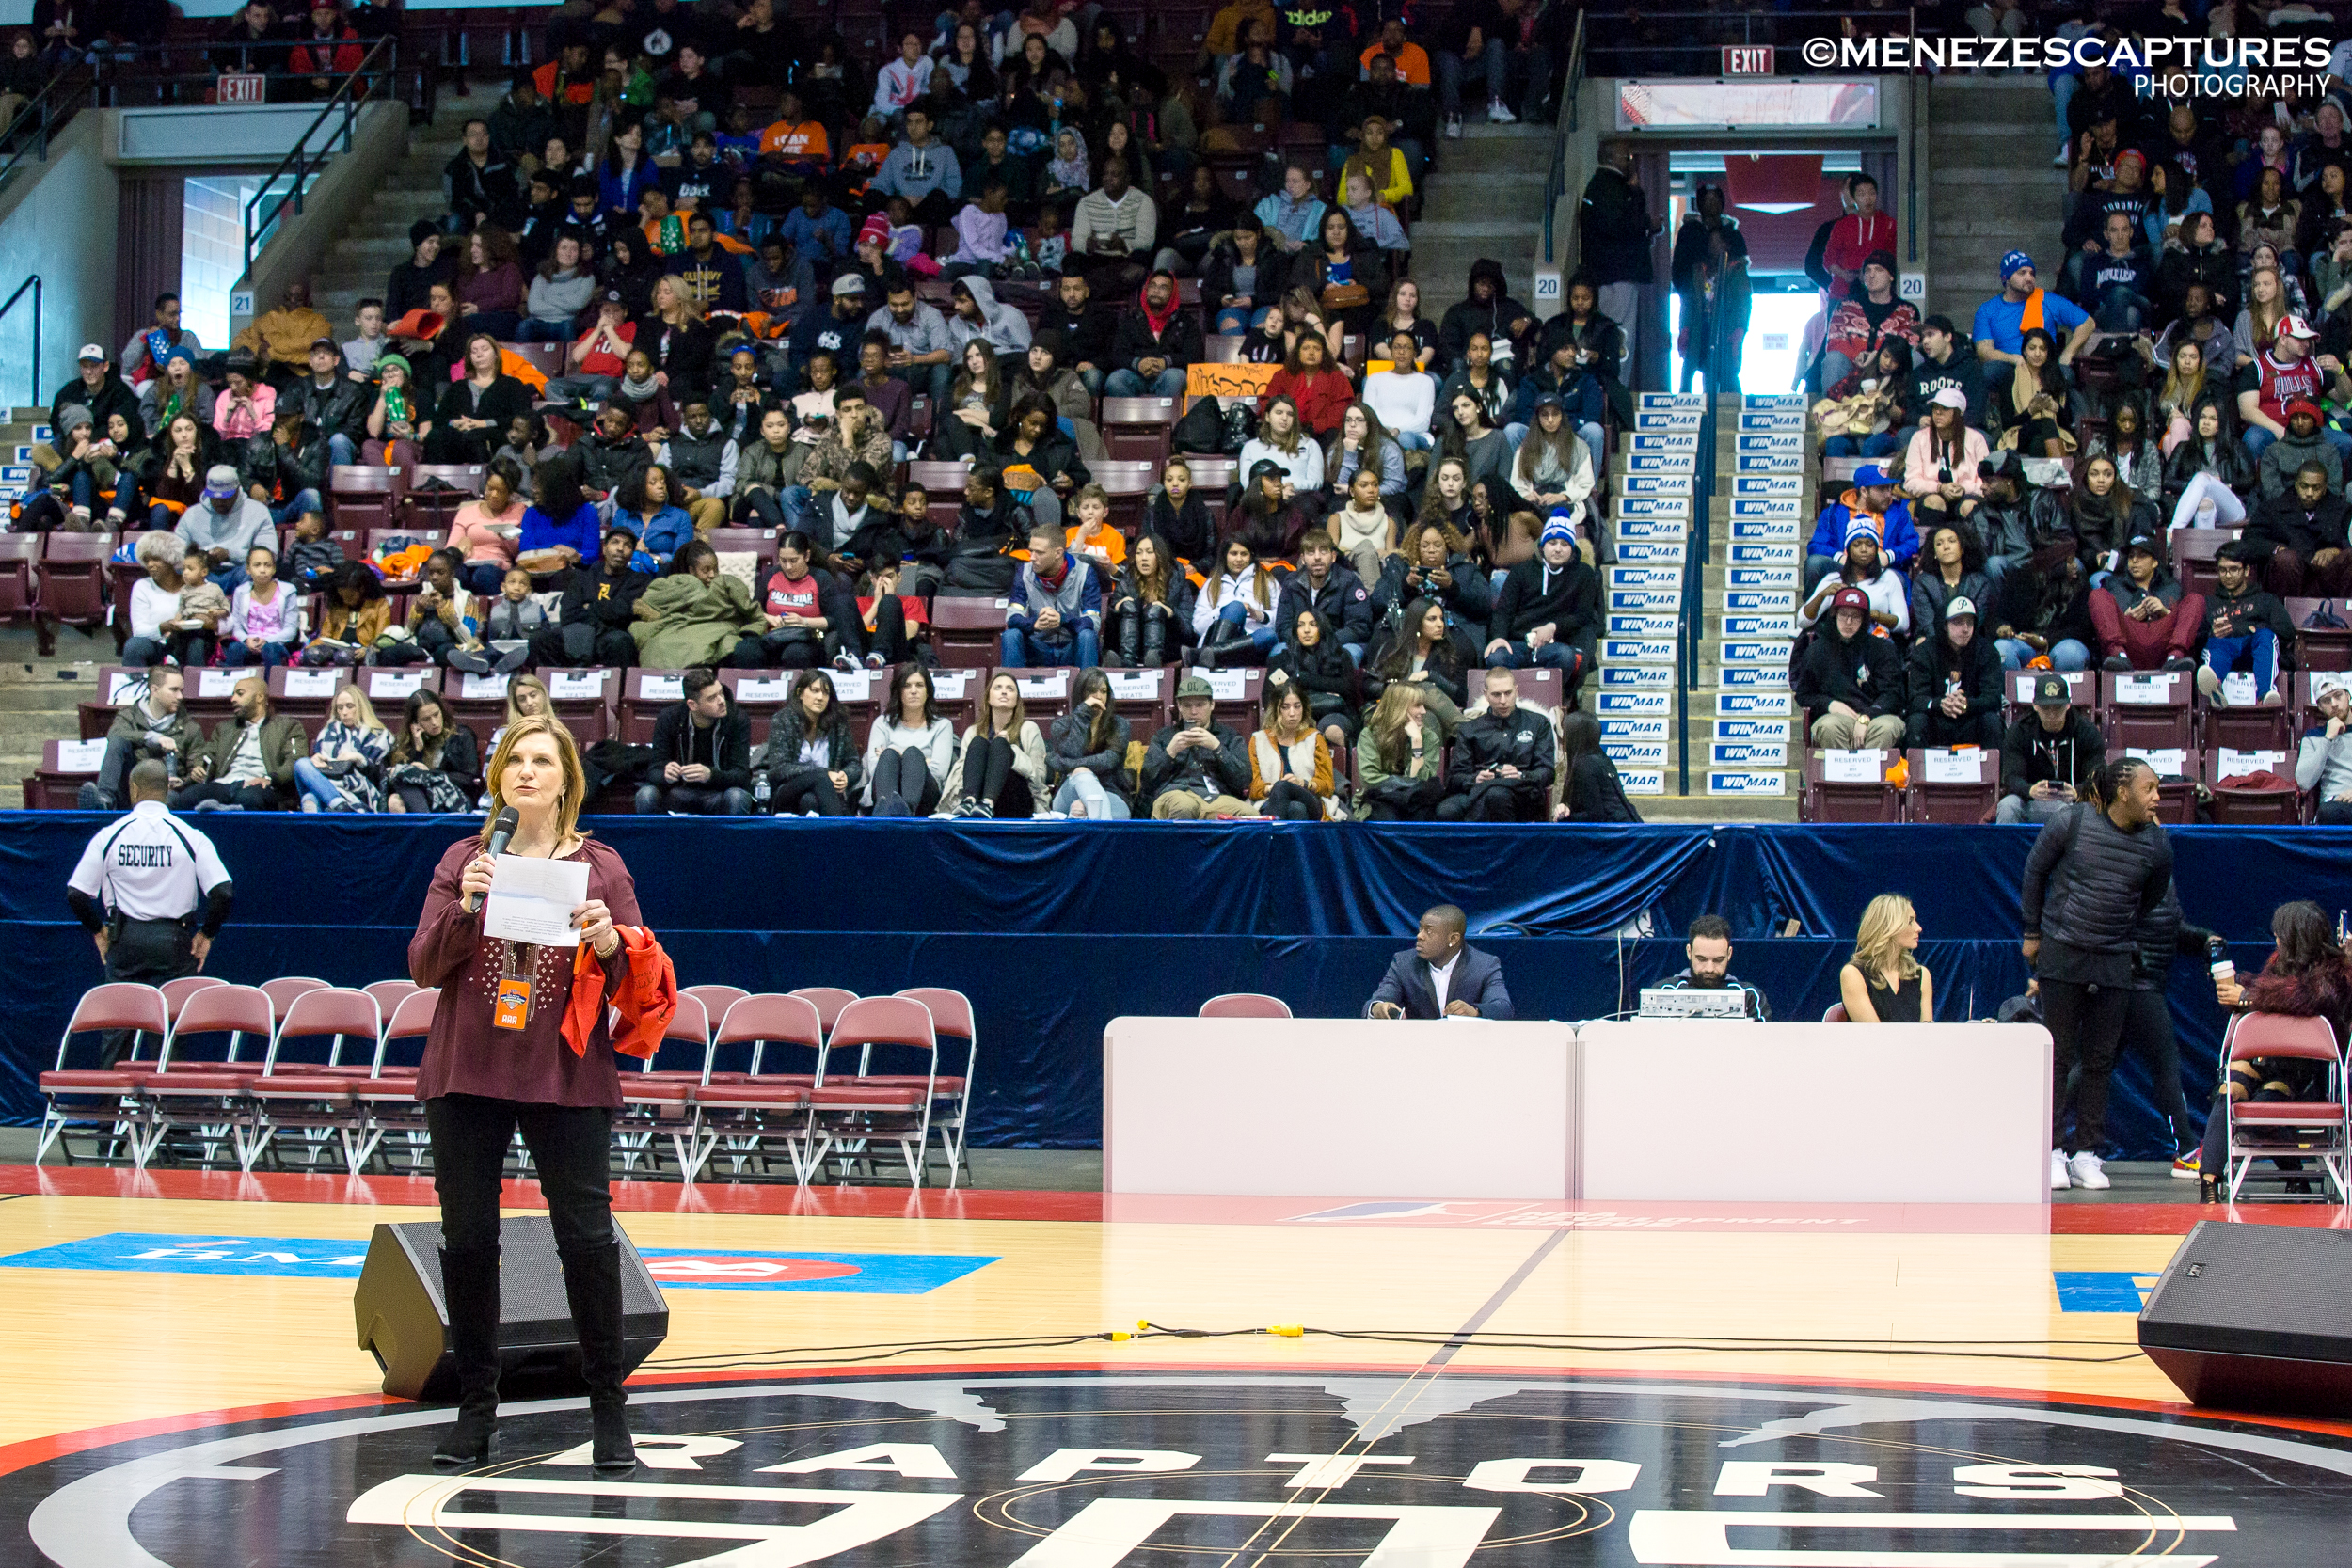 United Way CEO Shelley White addresses guests at the 2017 NBA All Star Celebrity Game